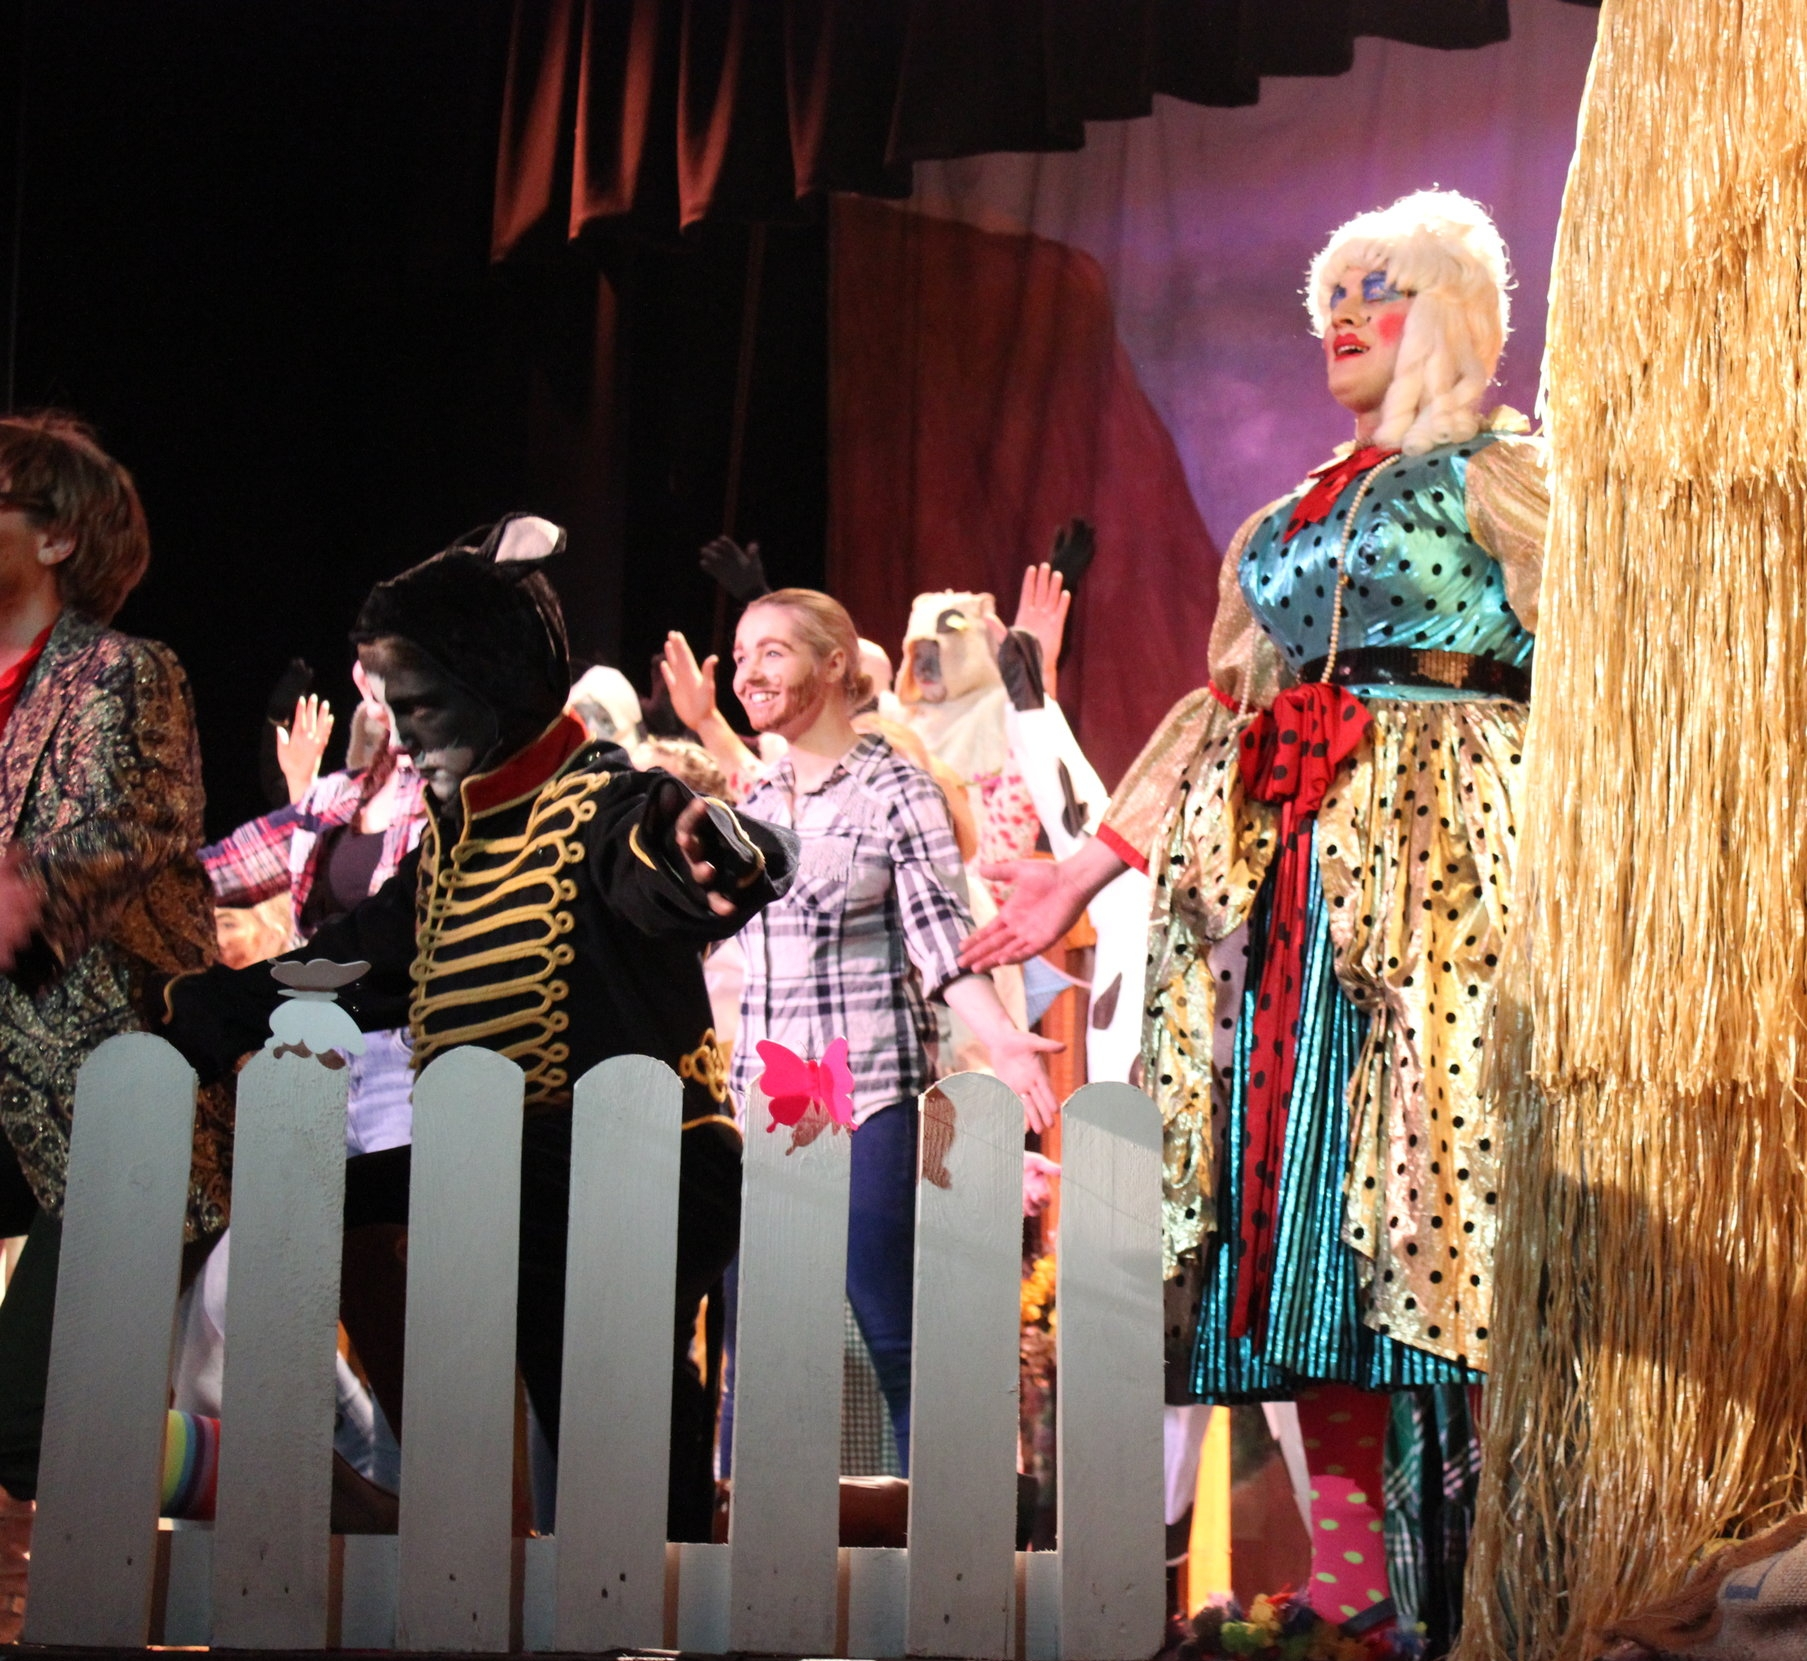 Aled Price as Betsy Blue in Rhayader YFC's Pantomime.